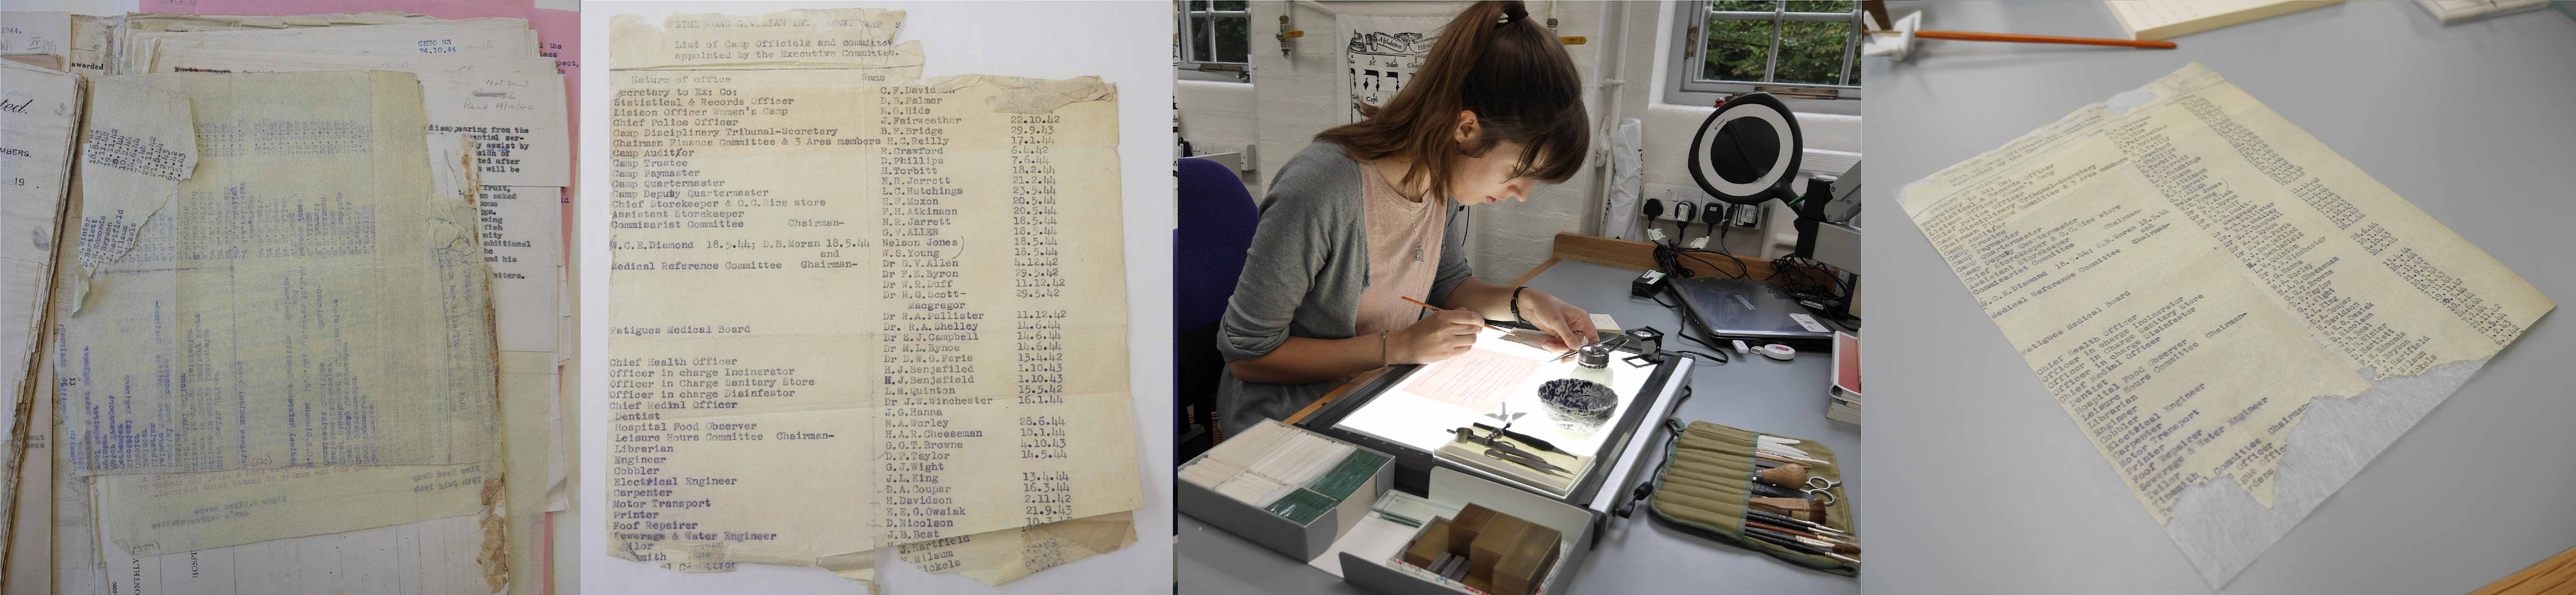 (L-R) Example of a leaf in bad condition, the removed leaf of paper, Conservator Emma Nichols applying repairs the leaf on a light box, the leaf of paper after repair with conservation archival quality tissue